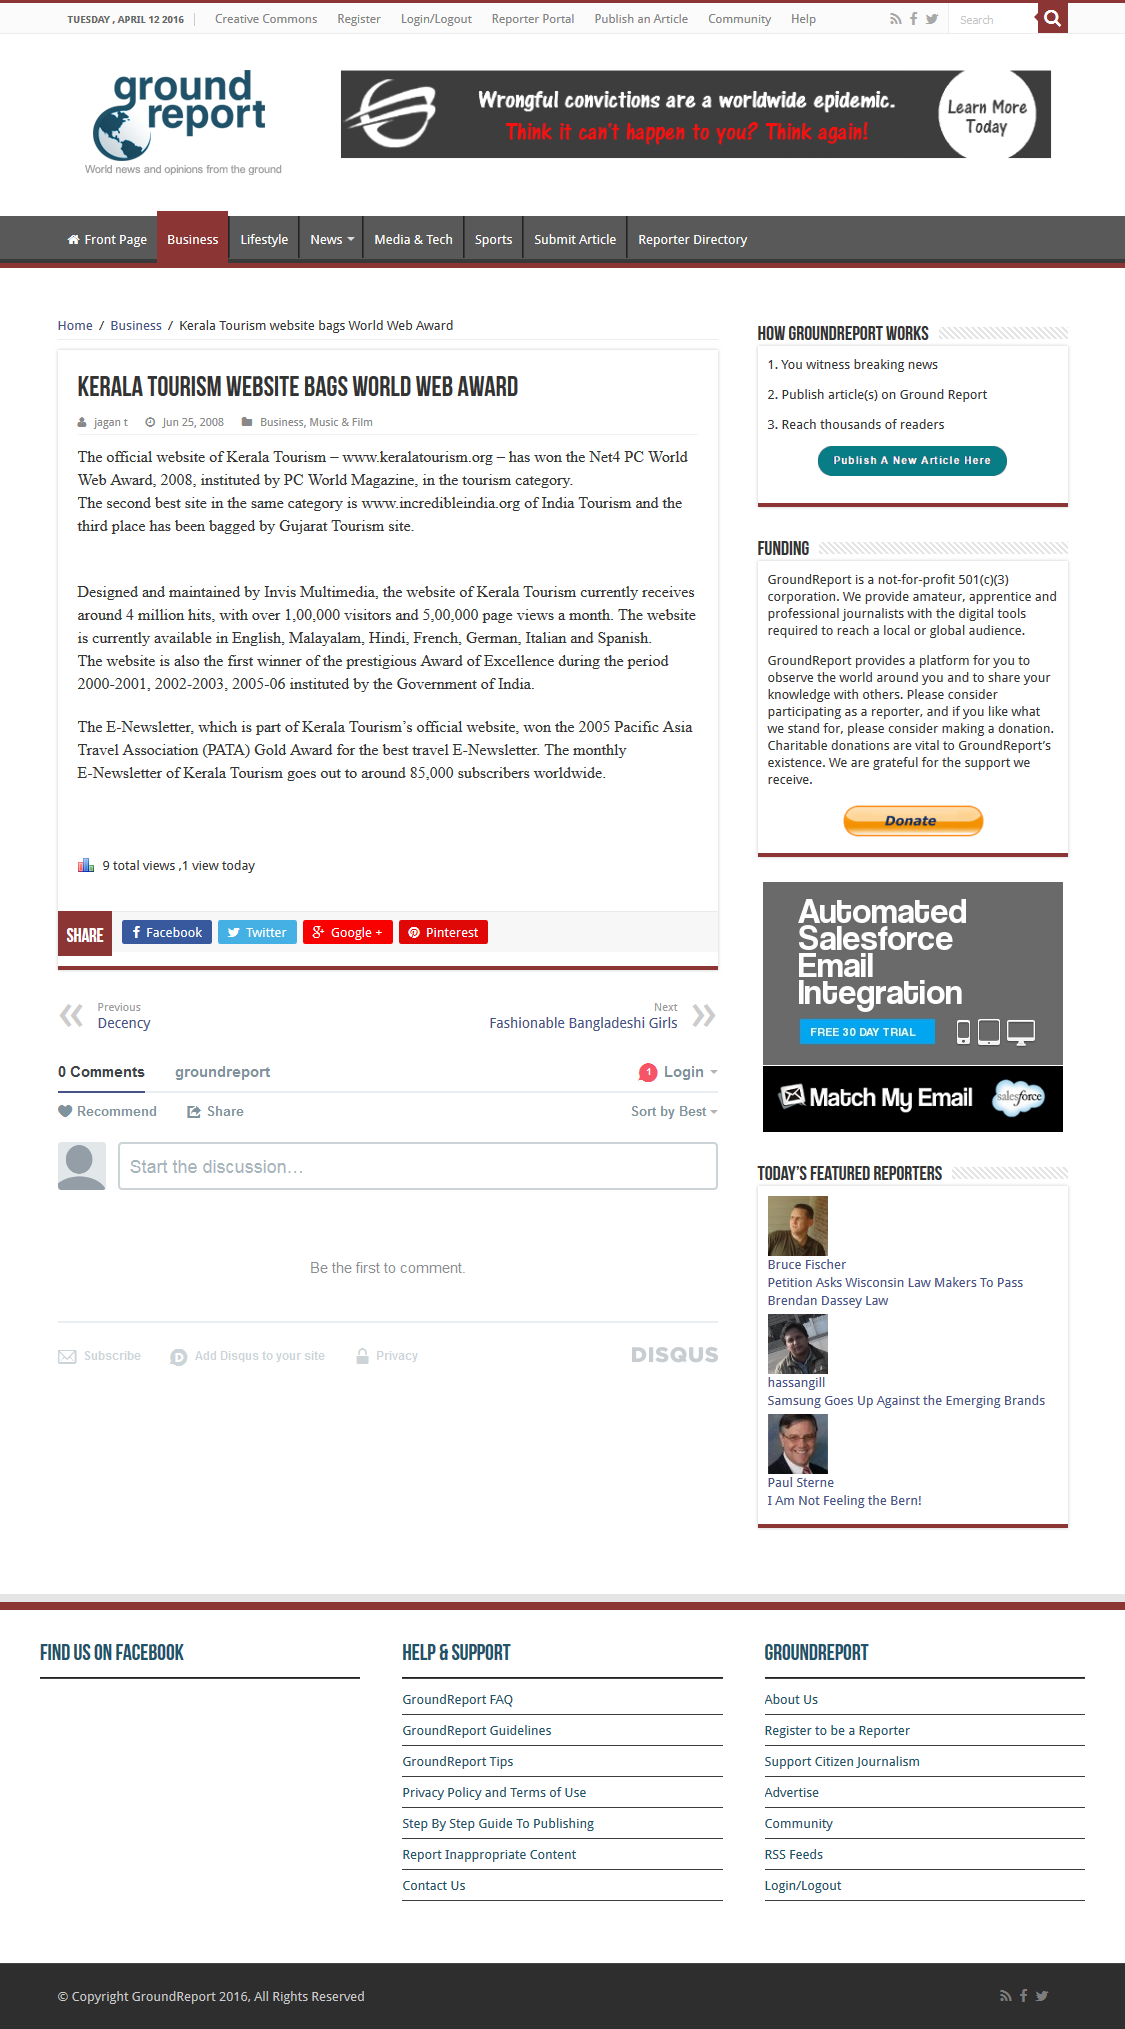 History, News and Media links of Invis Multimedia